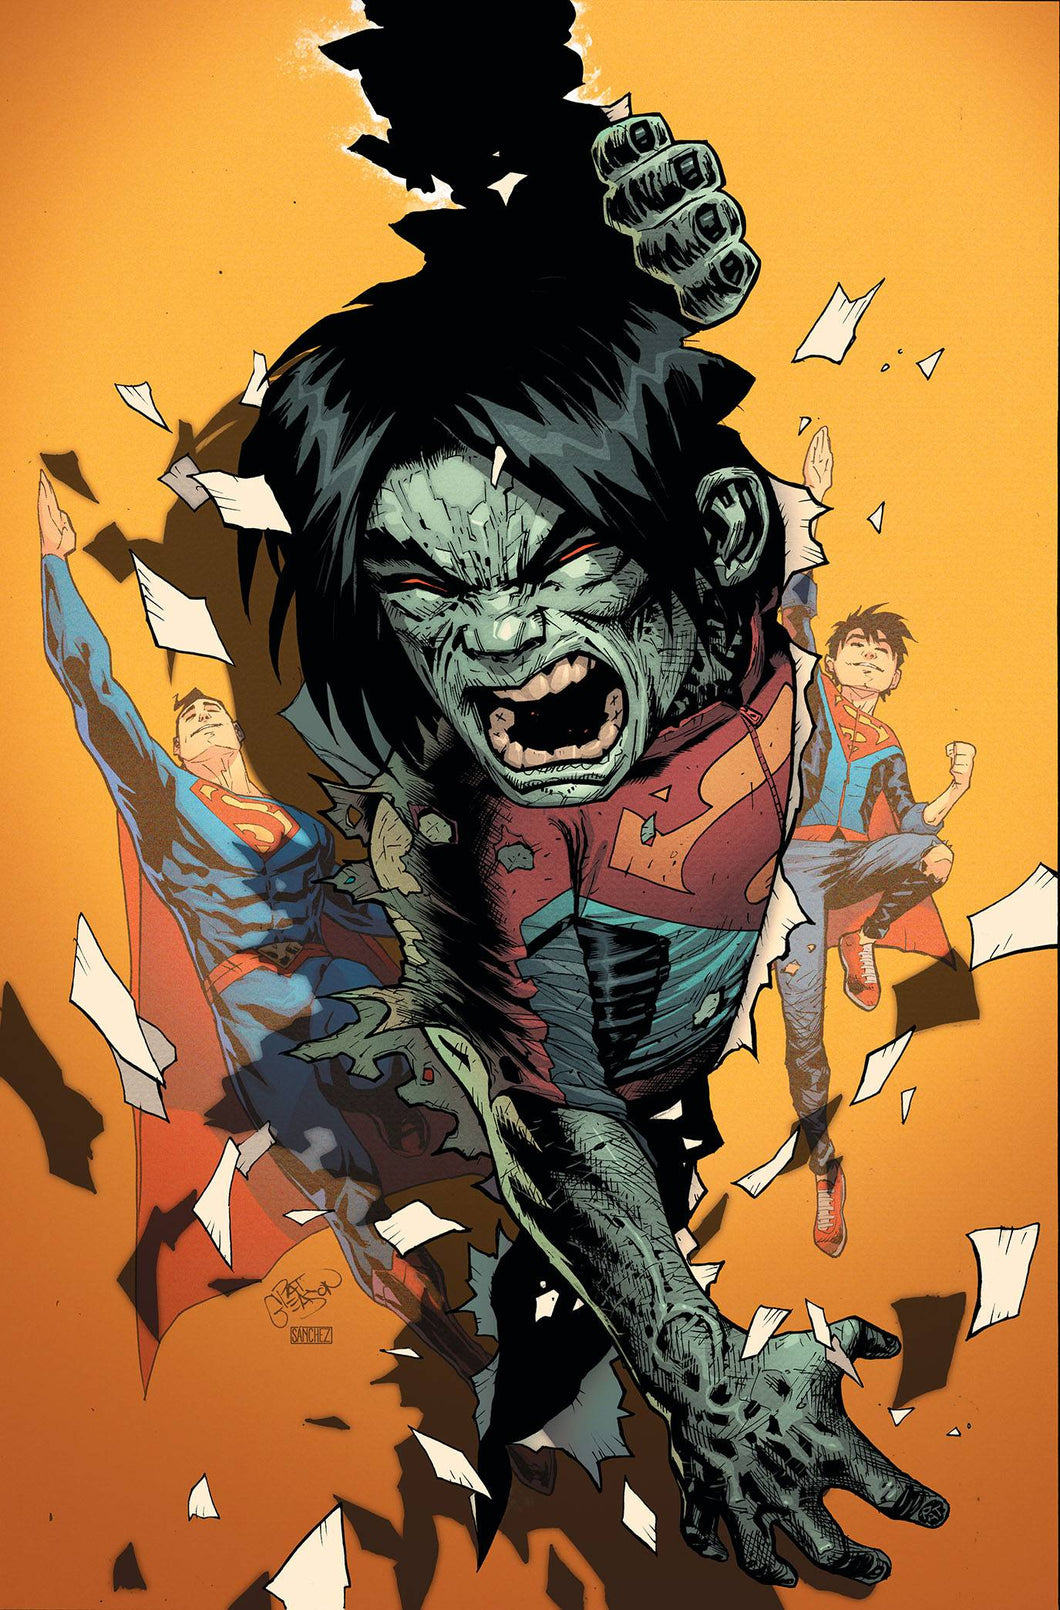 SUPERMAN #43 (FOC 02/26/18)